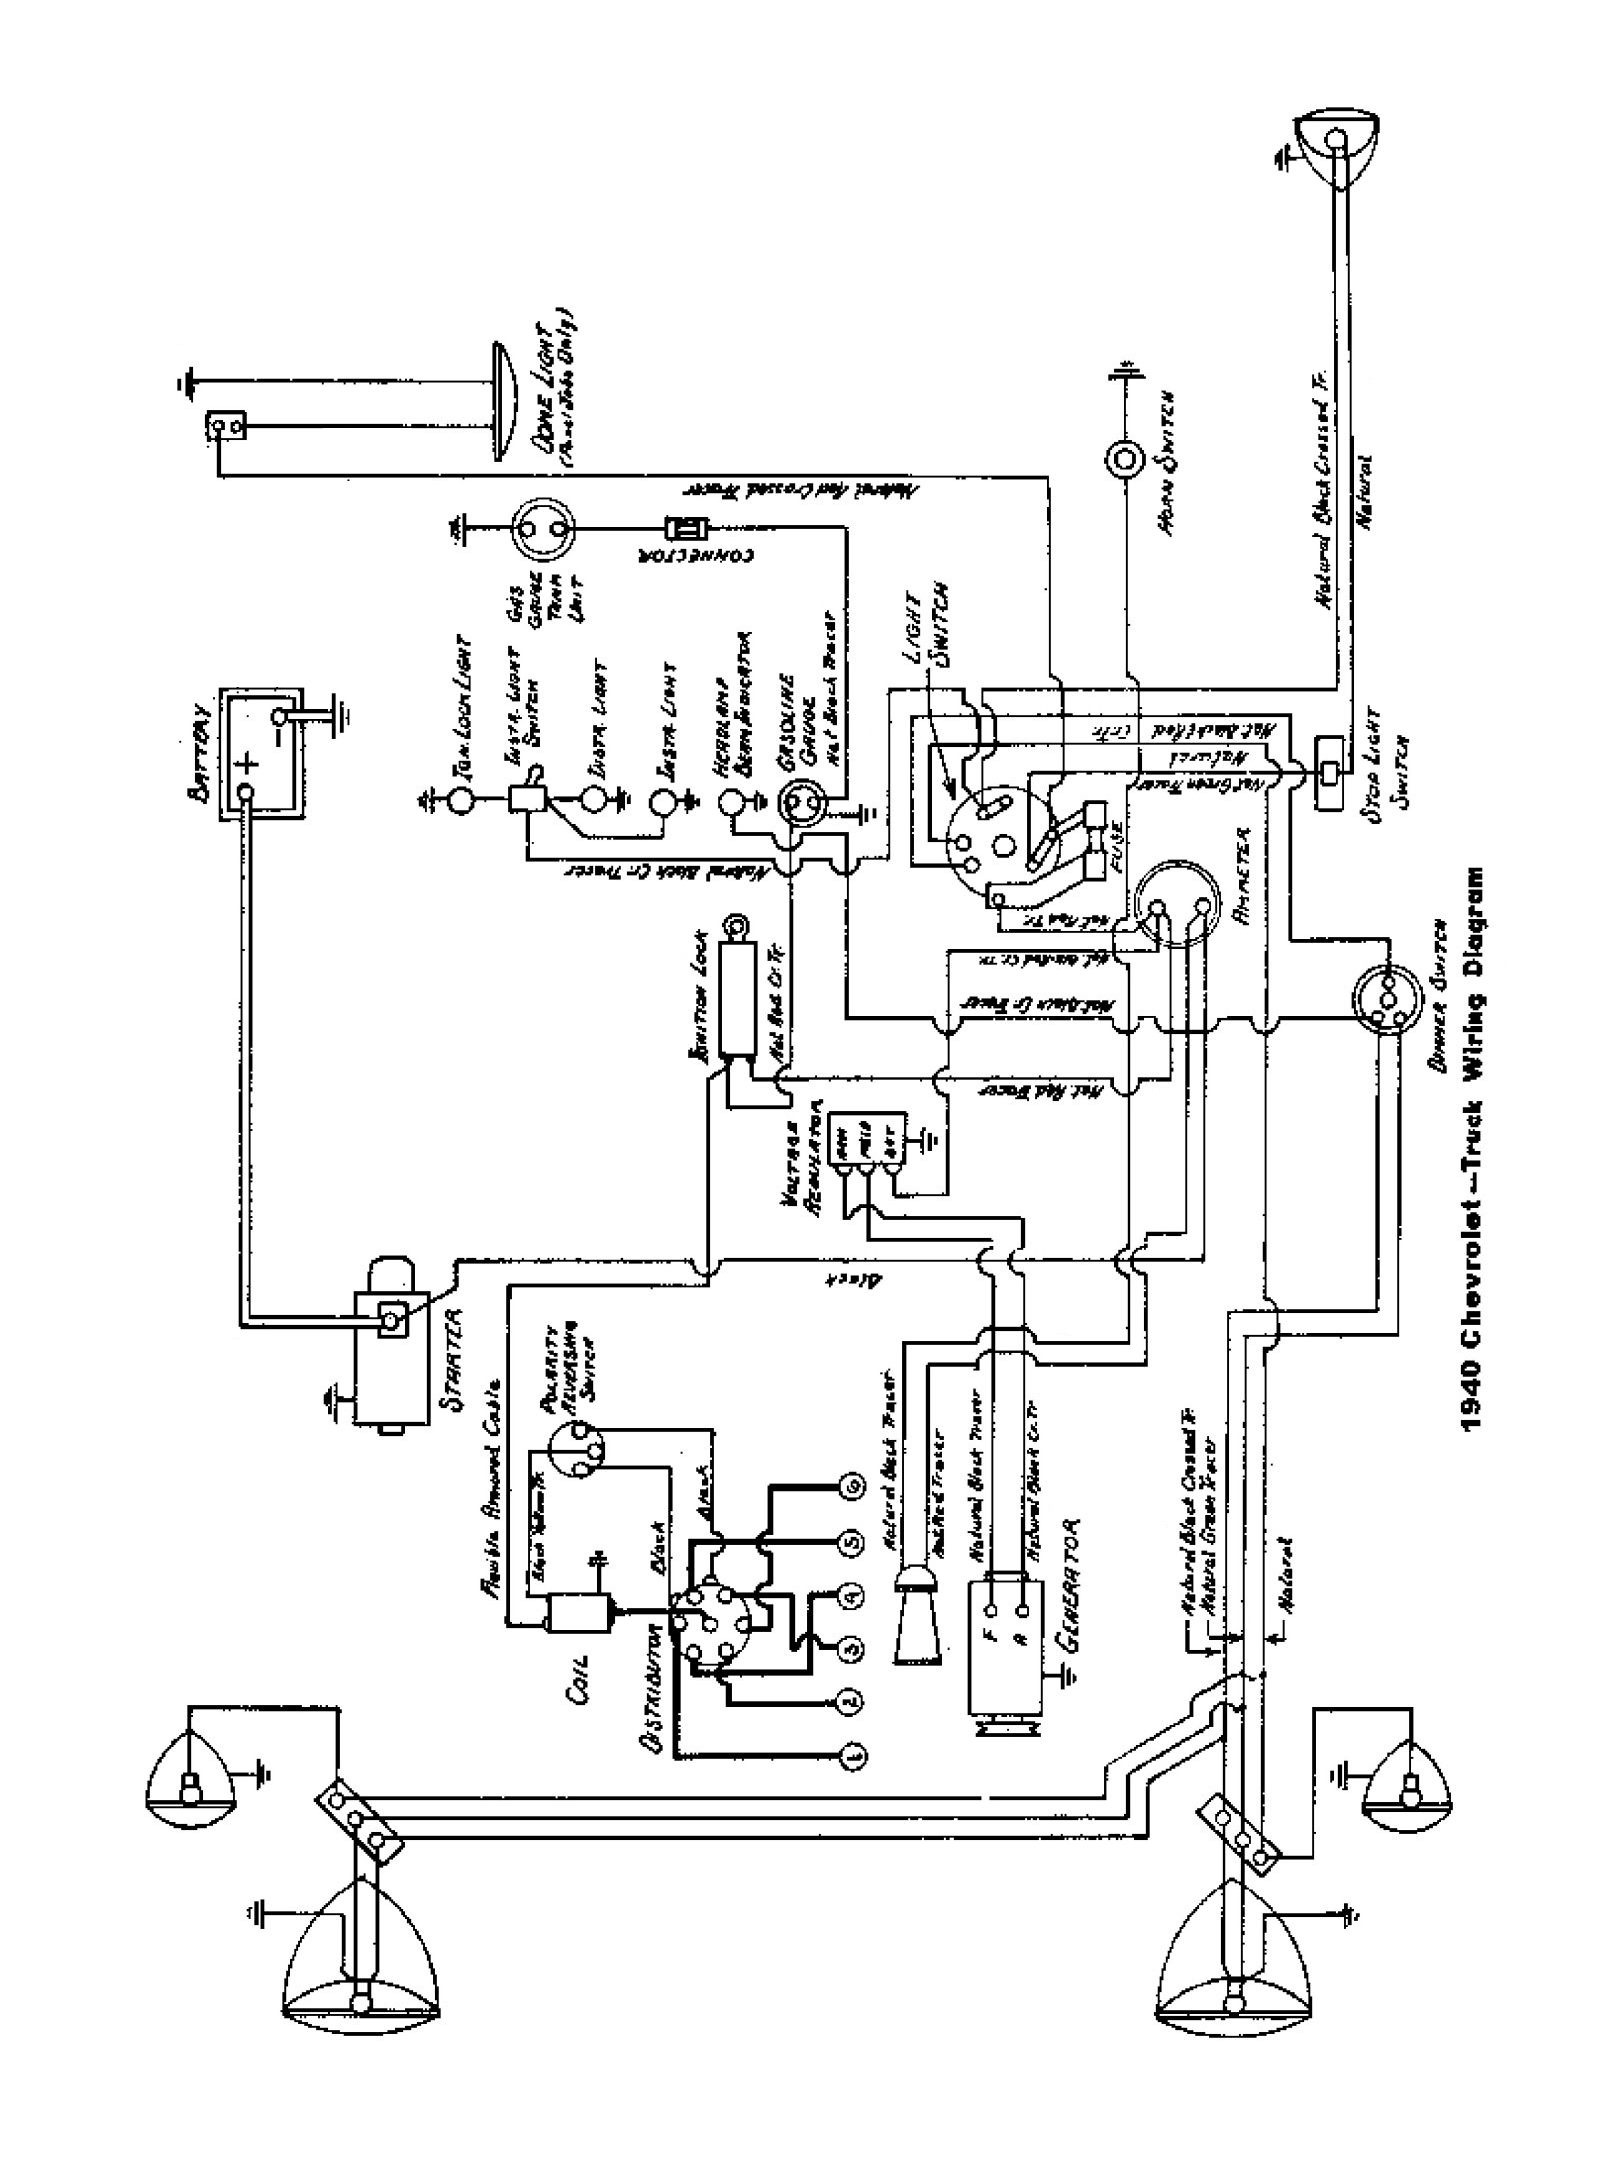 Wiring Diagram For 1940 Ford Headlight Switch on 1941 ford truck wiring diagram